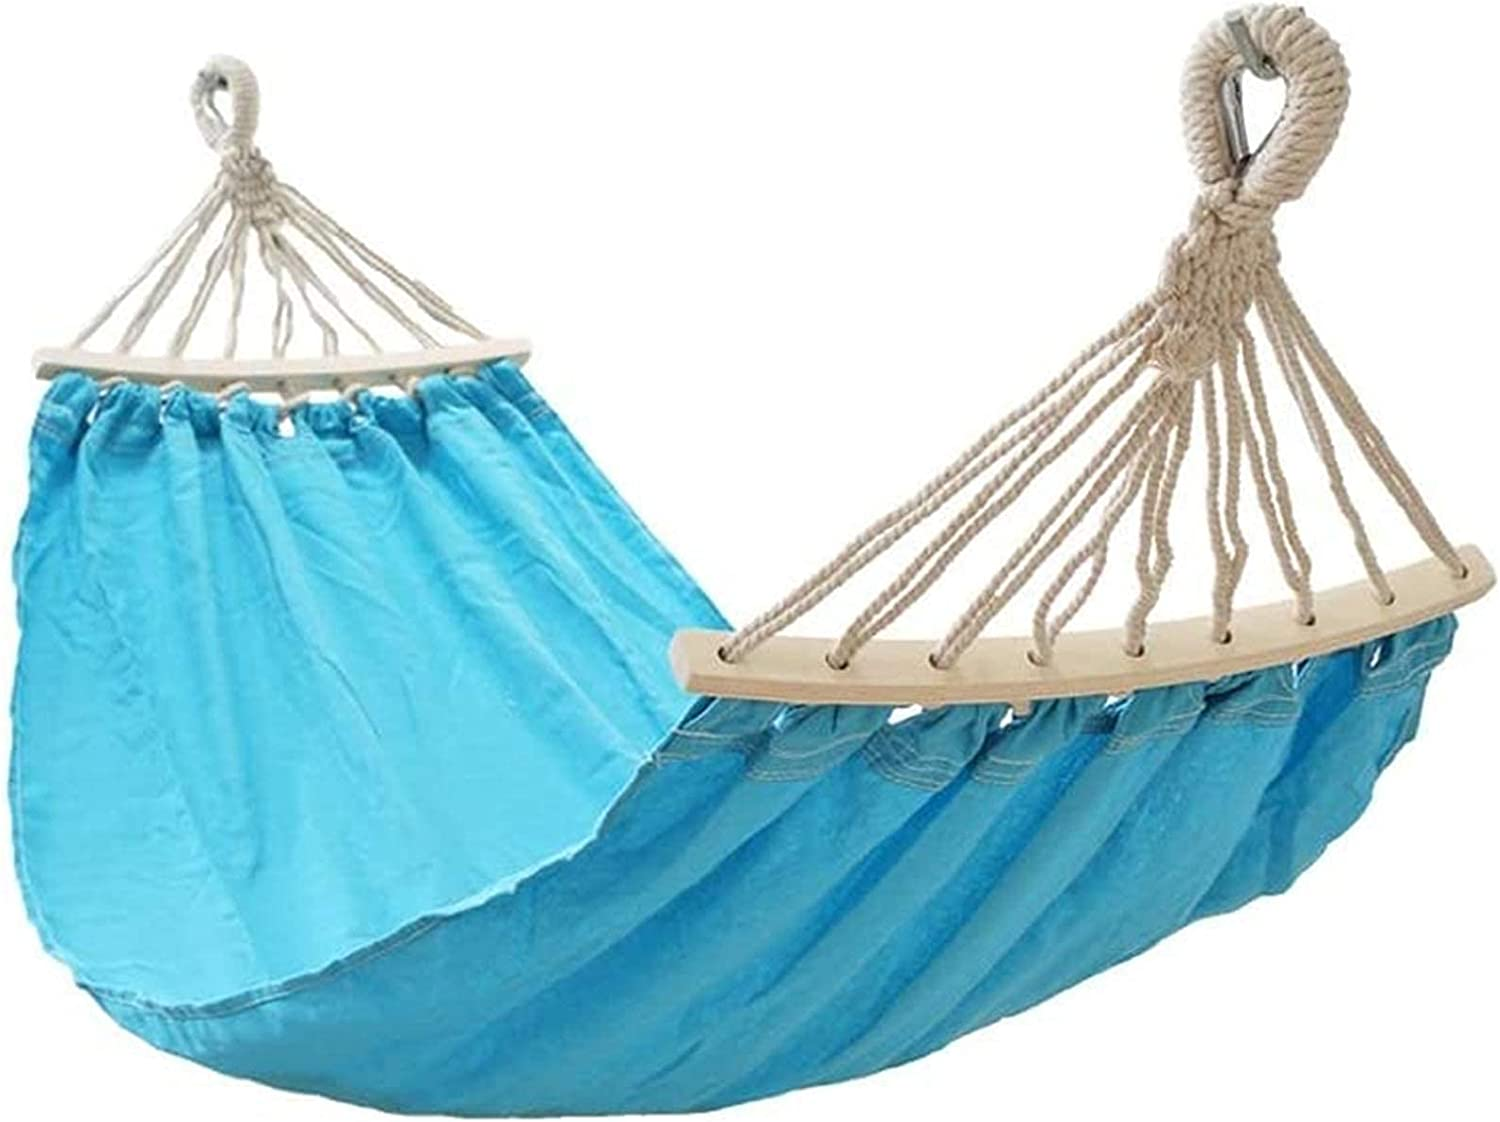 BAIYAN Outdoor Tent, Super popular specialty Fixed price for sale store Portable Fabri Hammock Children's